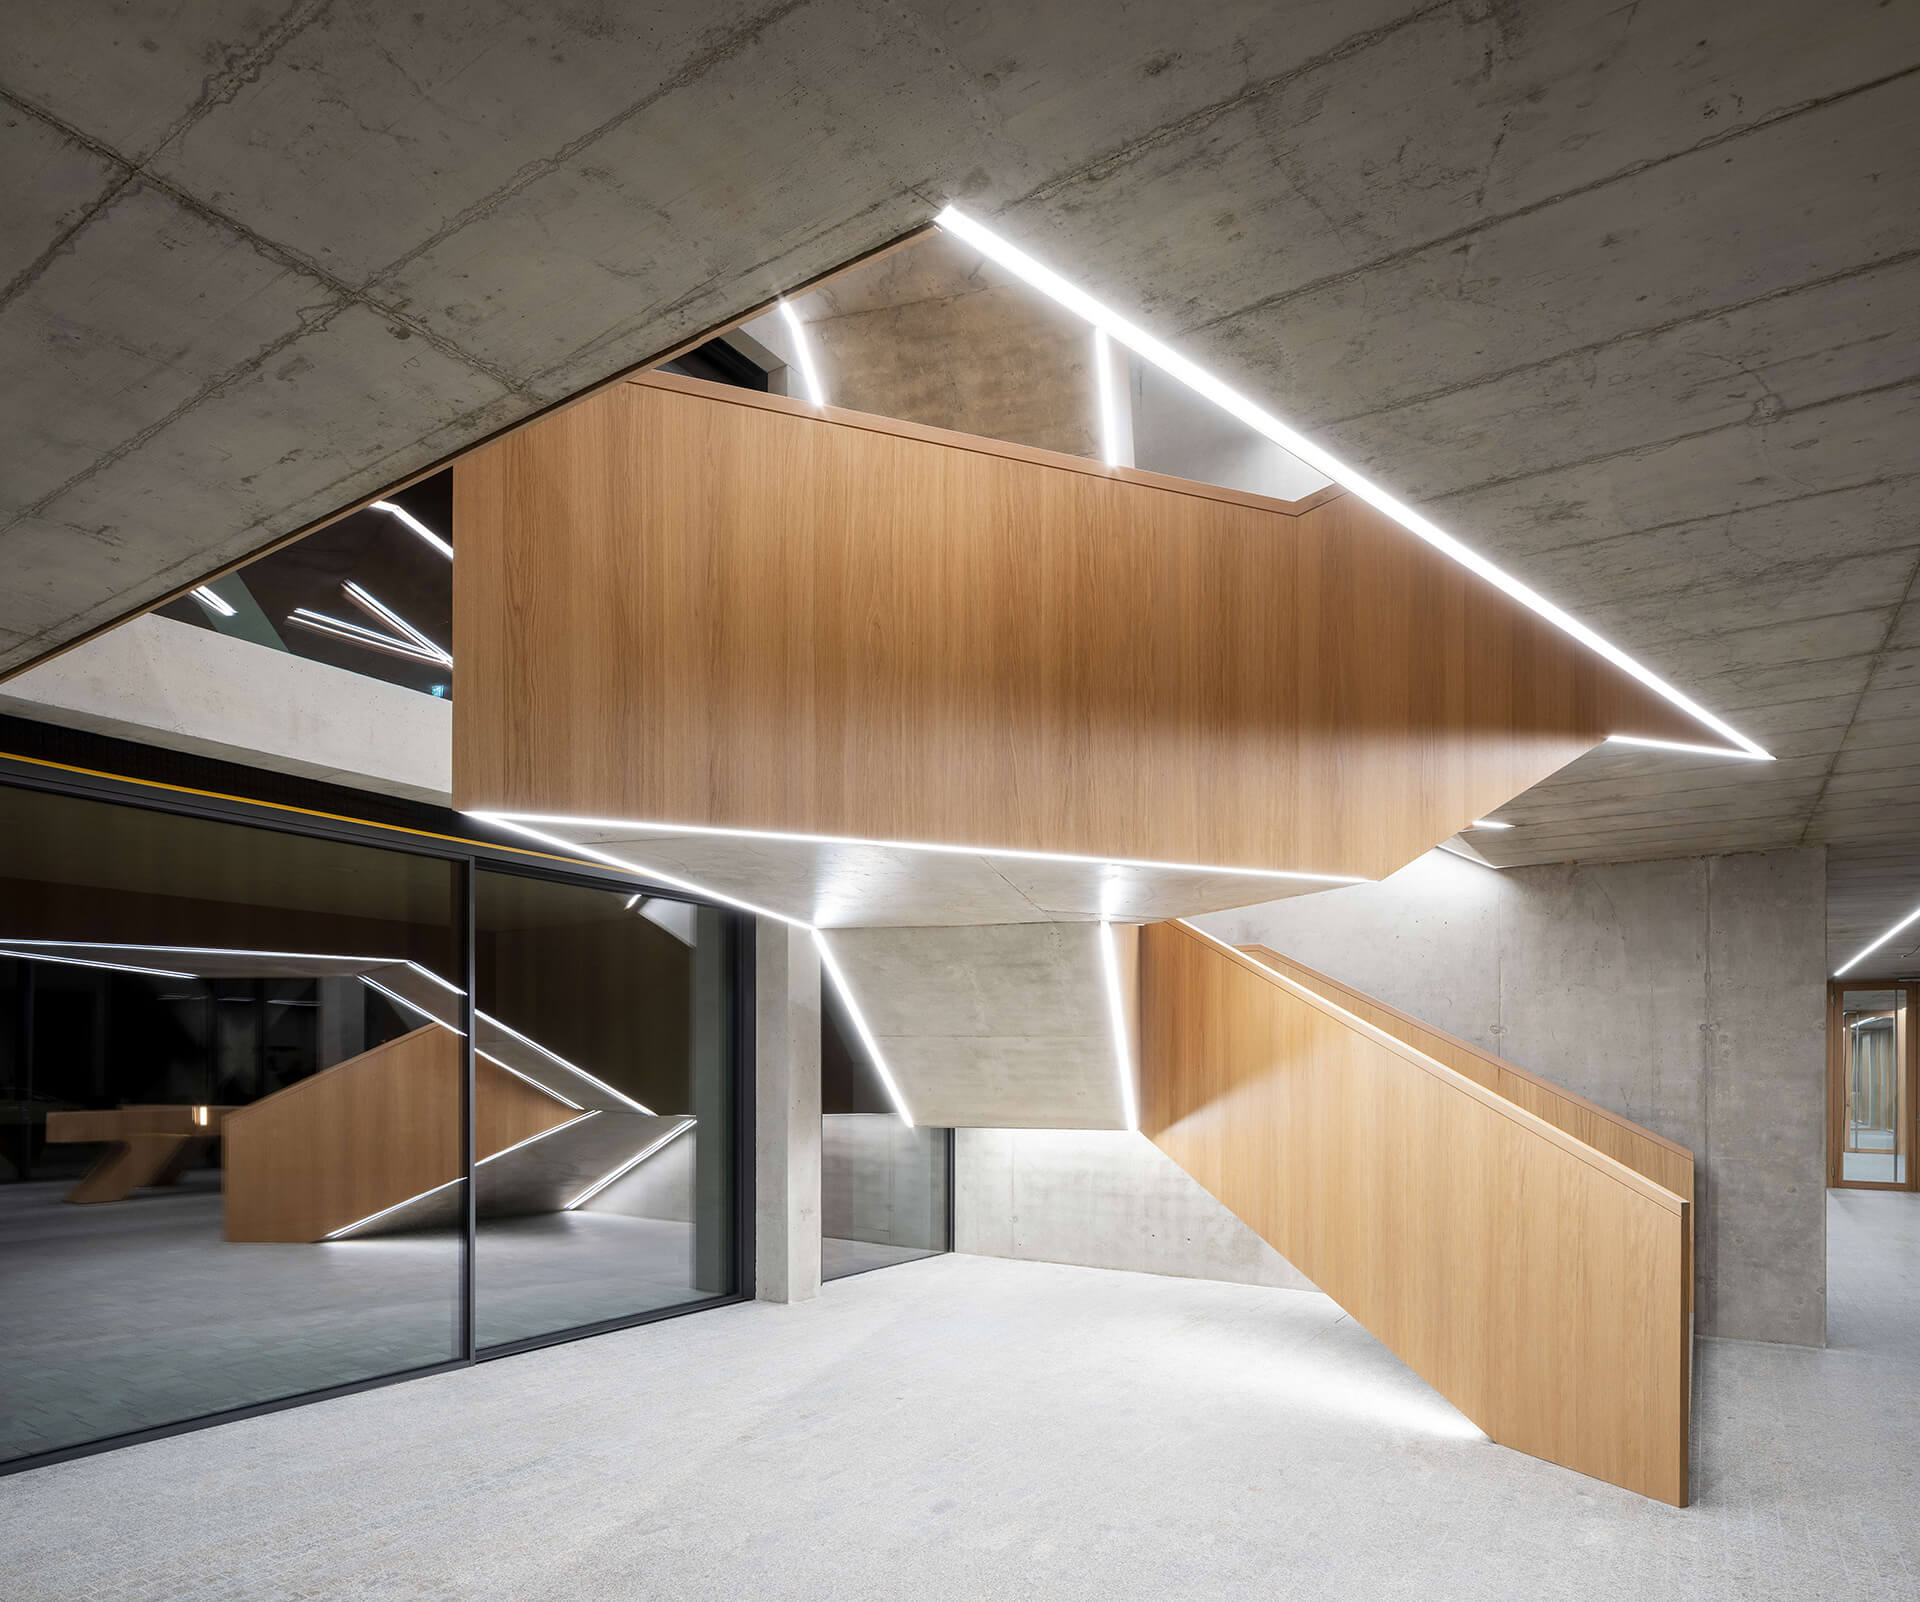 The interiors emphasise on crisp, geometry forms in wood and concrete | J. MAYER H. | Germany | STIRworld